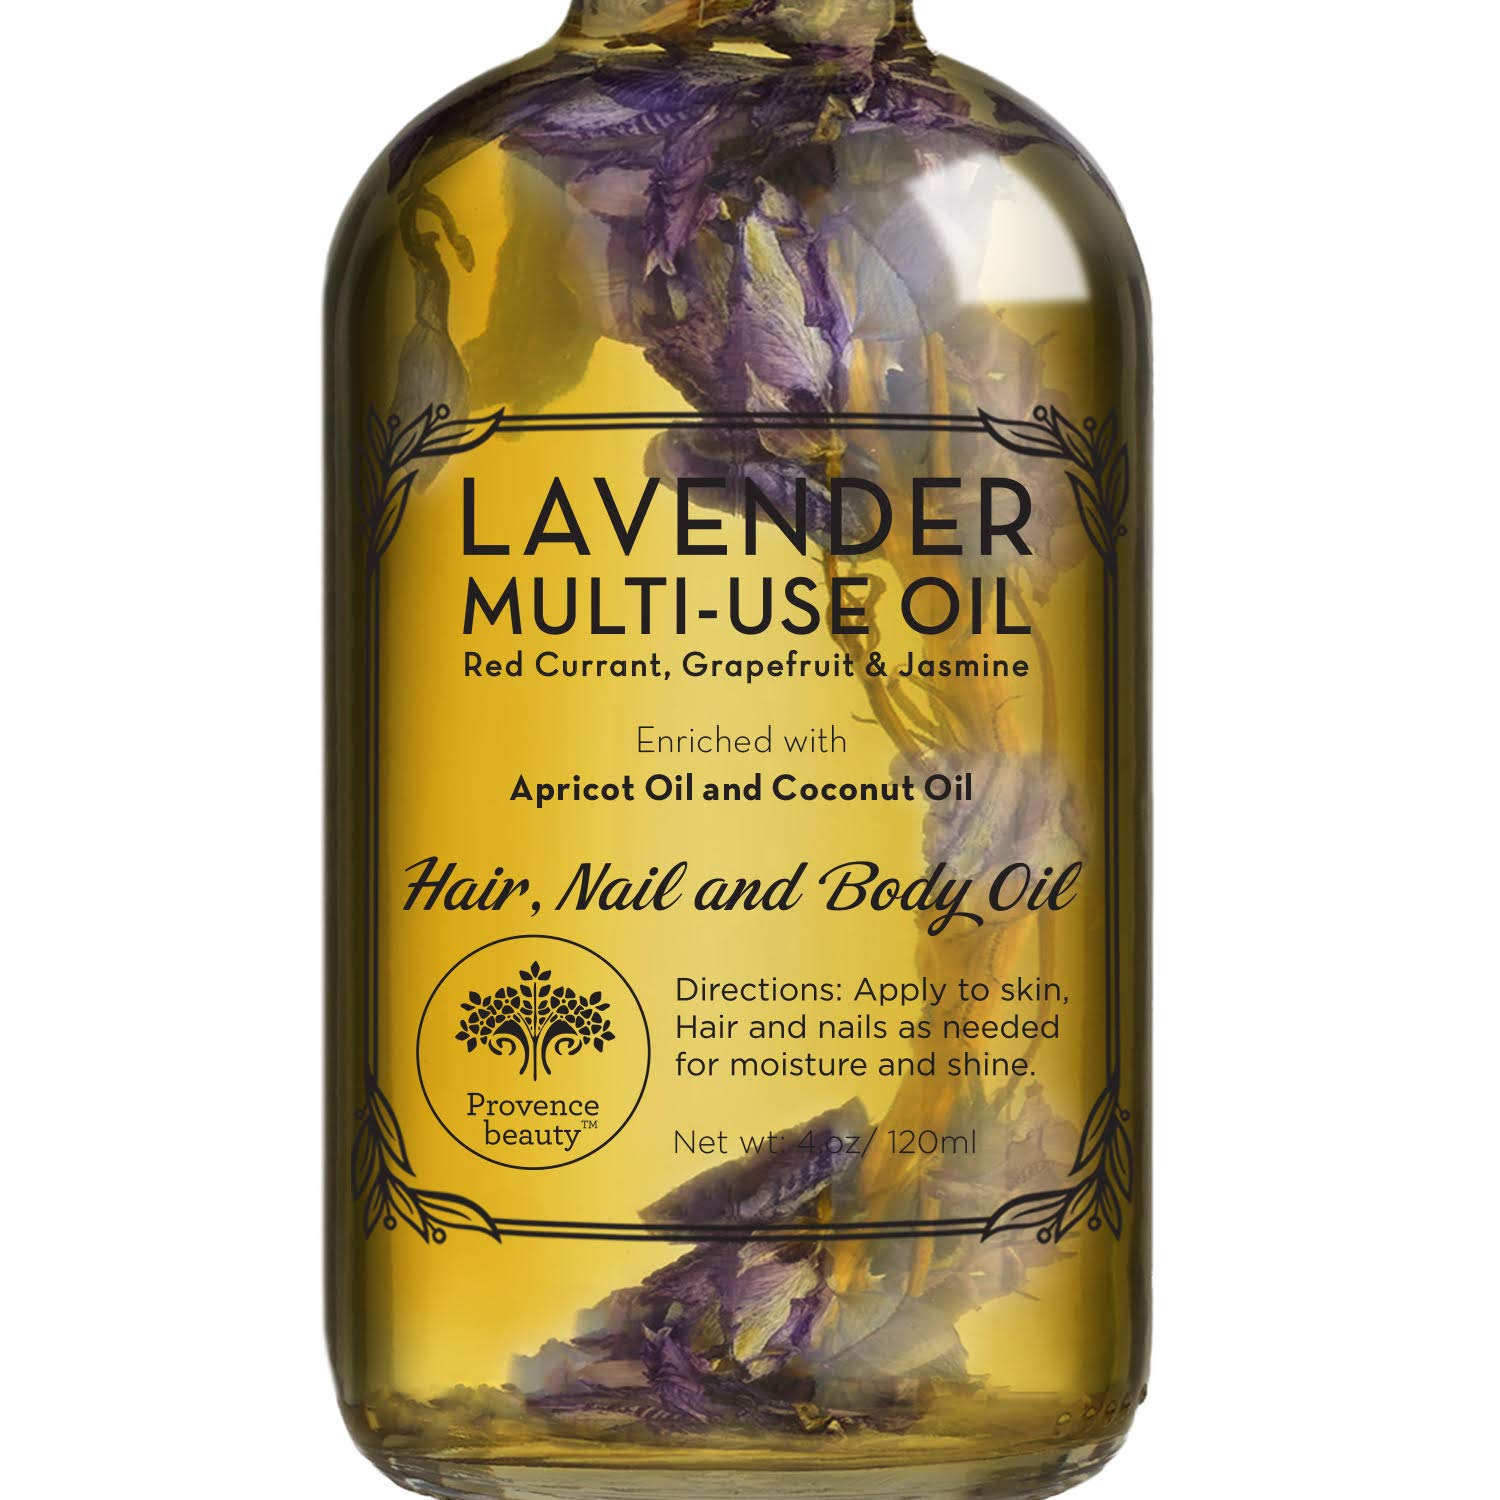 Lavender Multi-Use Oil for Face, Body and Hair - Organic Blend of Apricot, Vitamin E, Fractionated Coocnut and Sweet Almond Oil Moisturizer for Dry Skin, Scalp and Nails - 4 Fl Oz